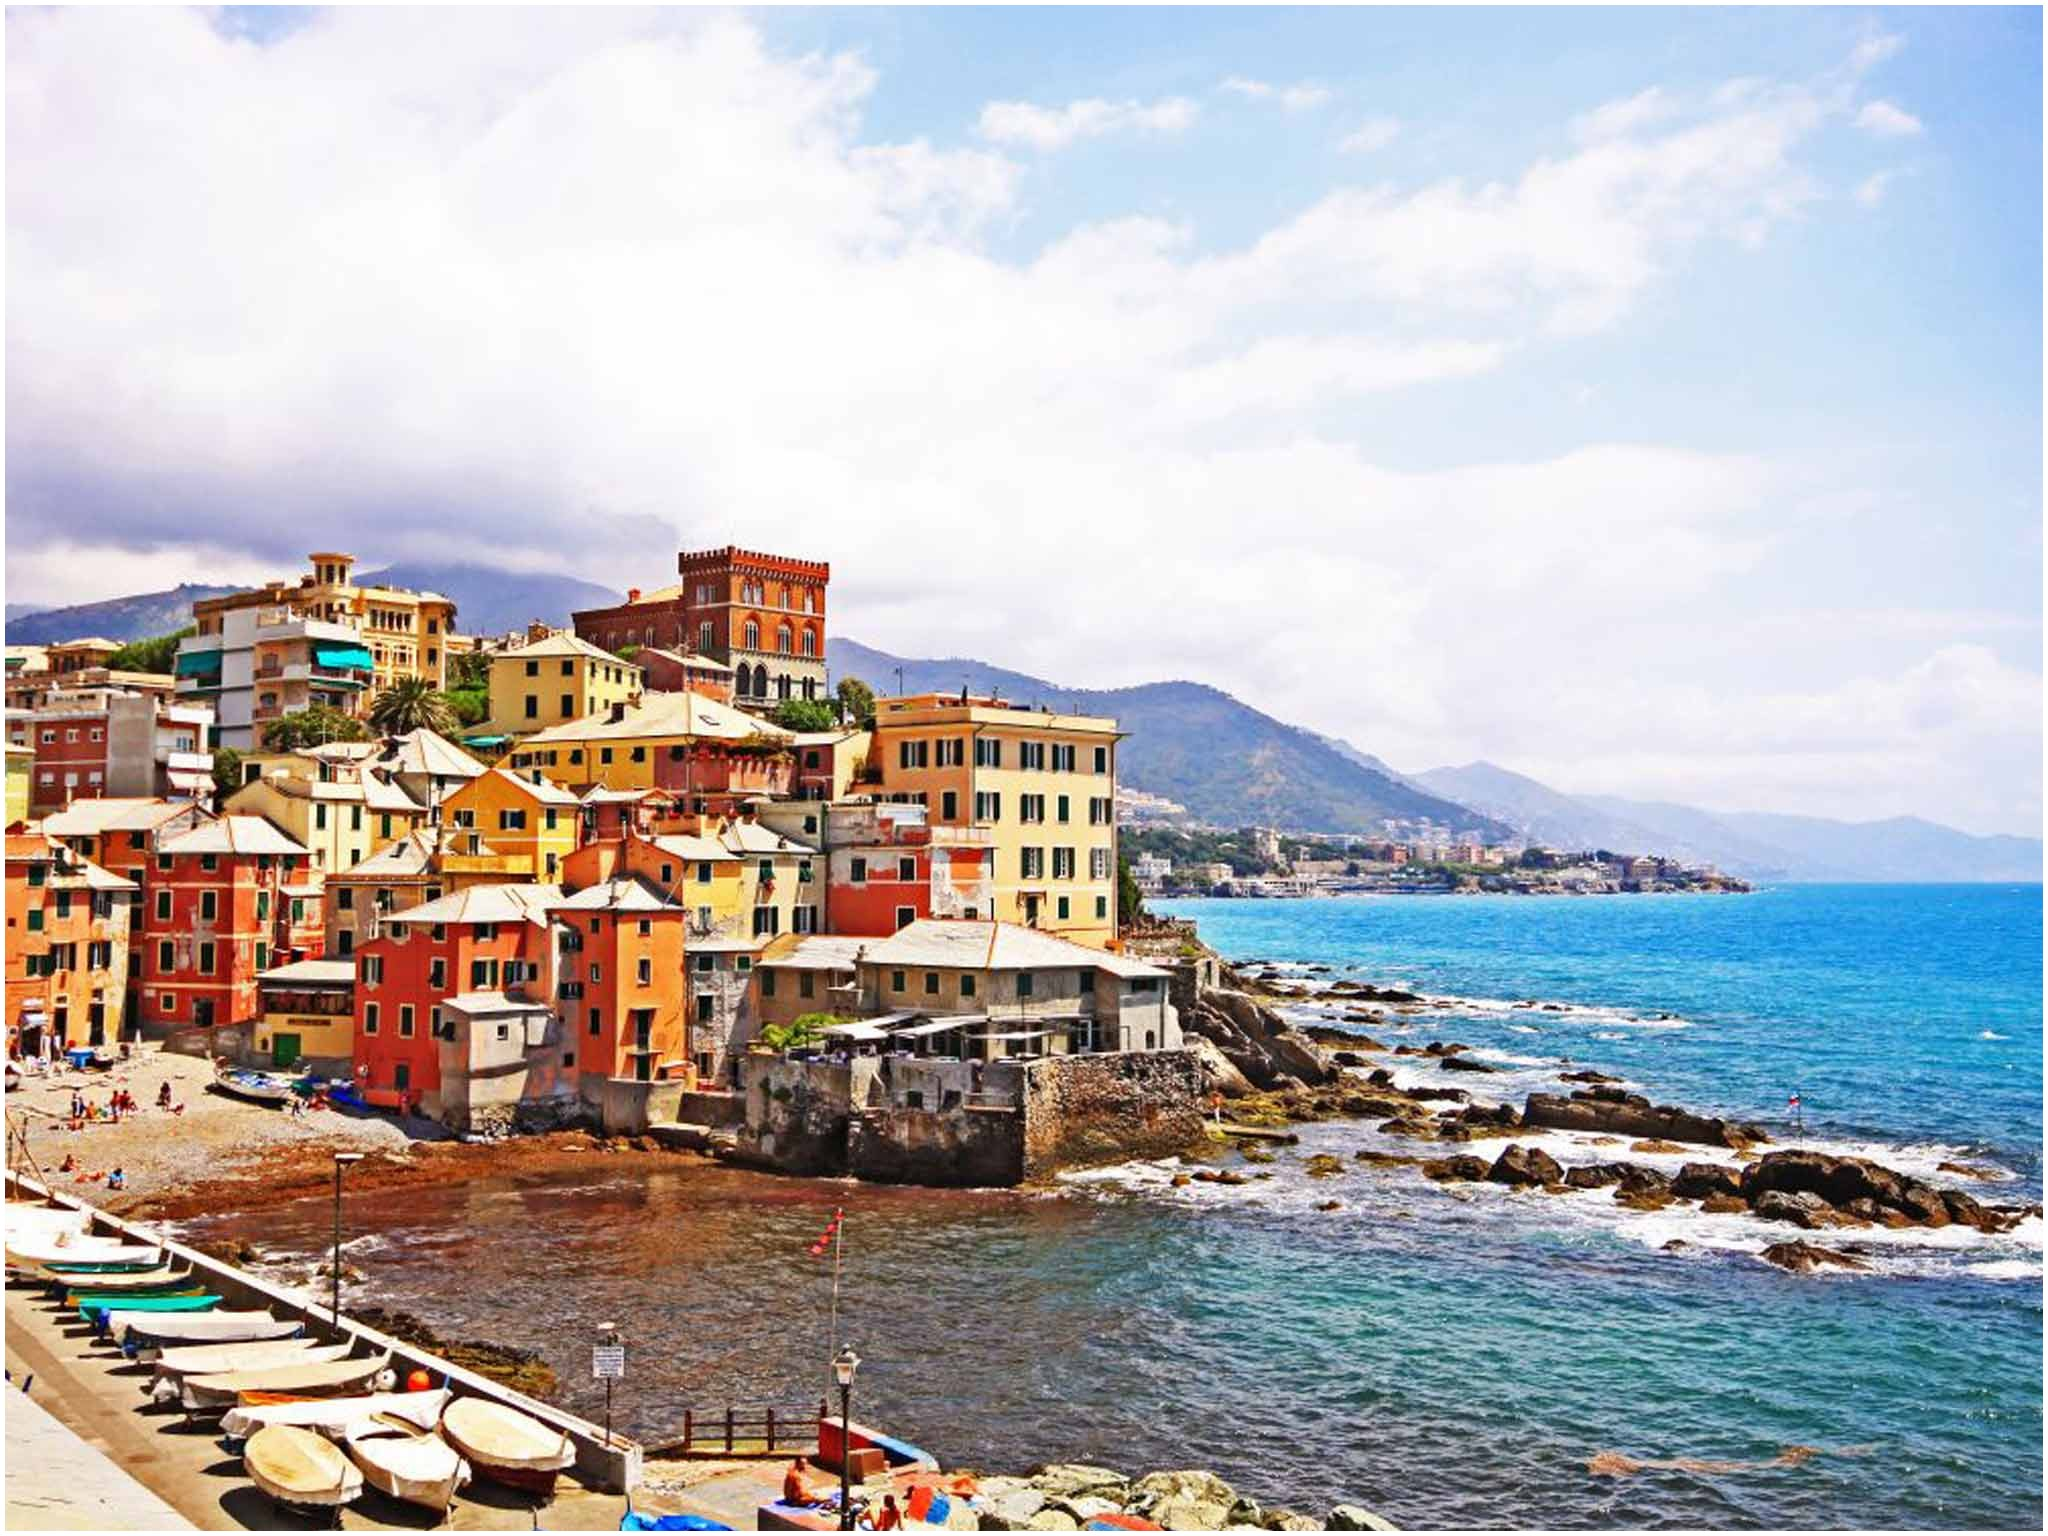 Genoa travel tips Where to go and what to see in 48 hours